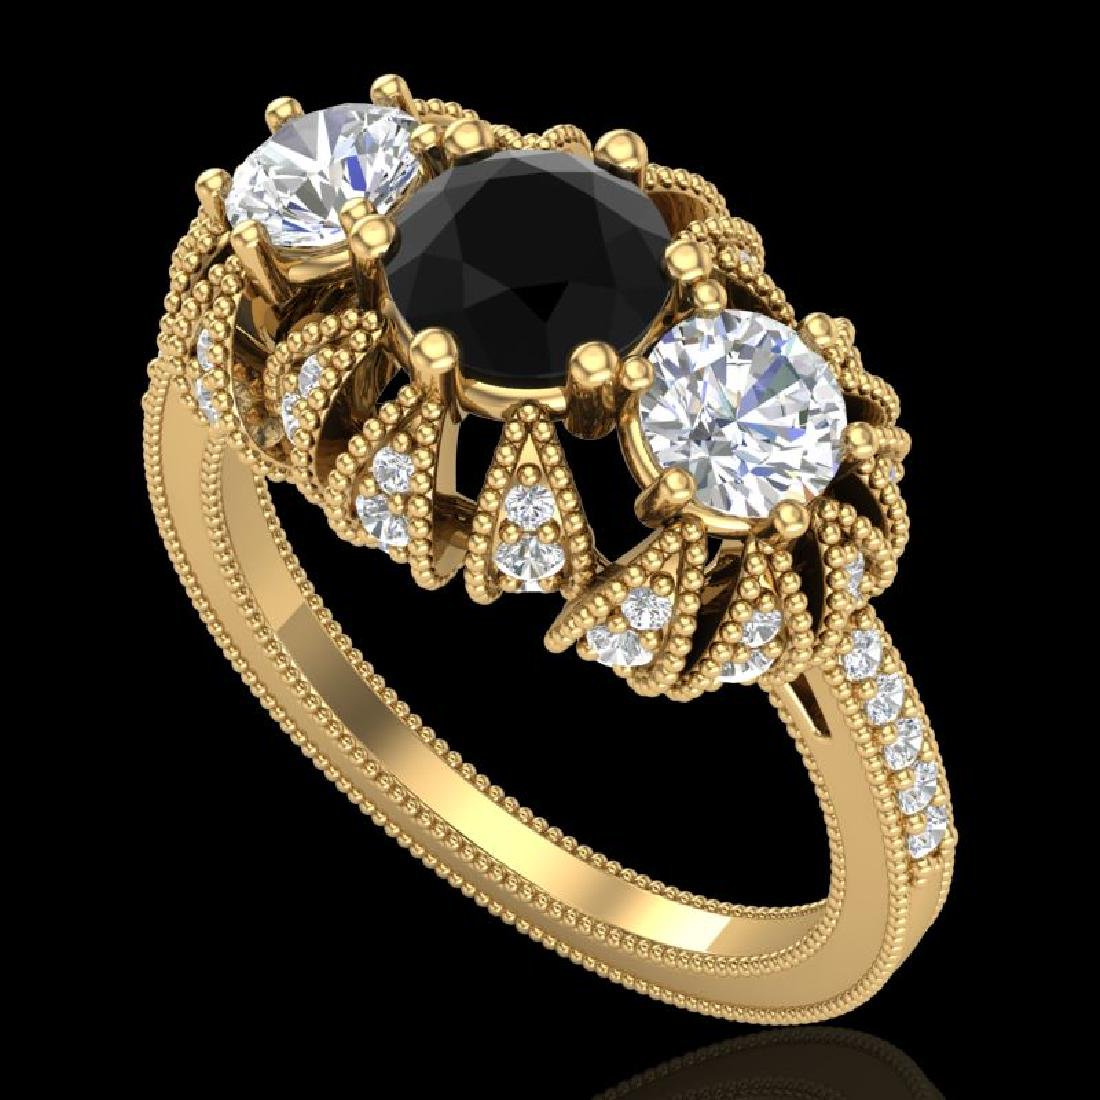 2.26 CTW Fancy Black Diamond Solitaire Art Deco 3 Stone